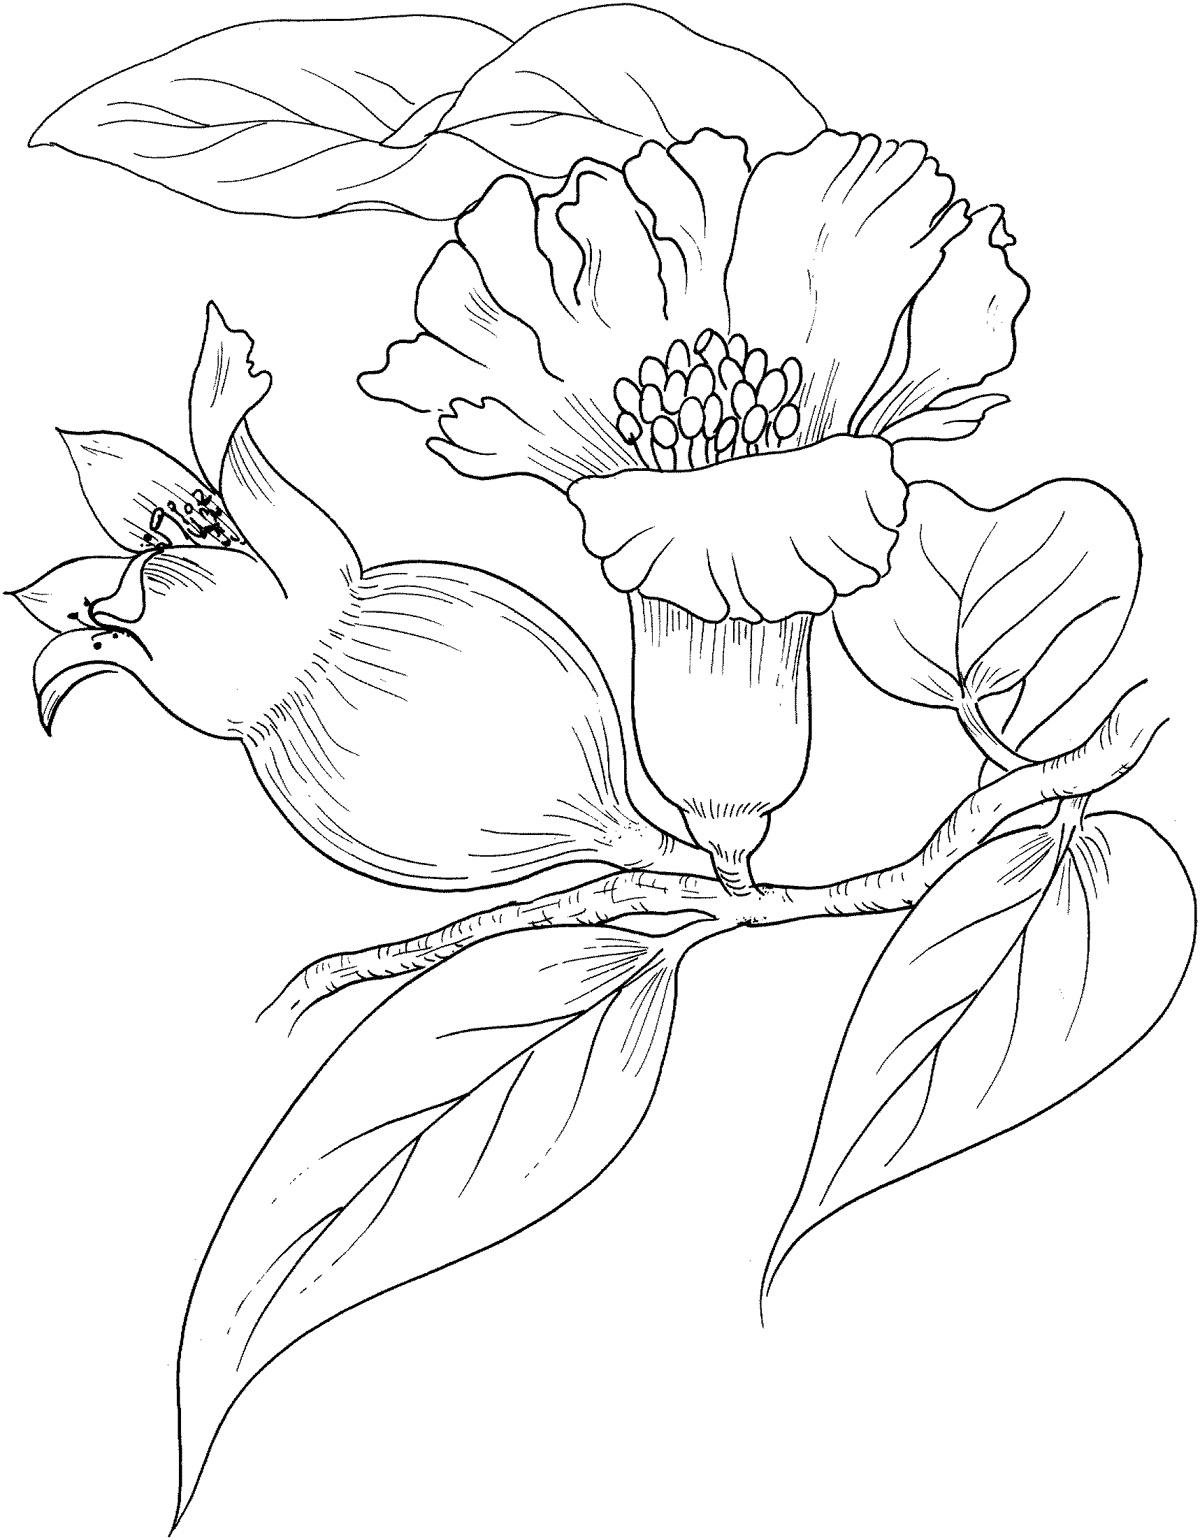 Gar fruit coloring pages to